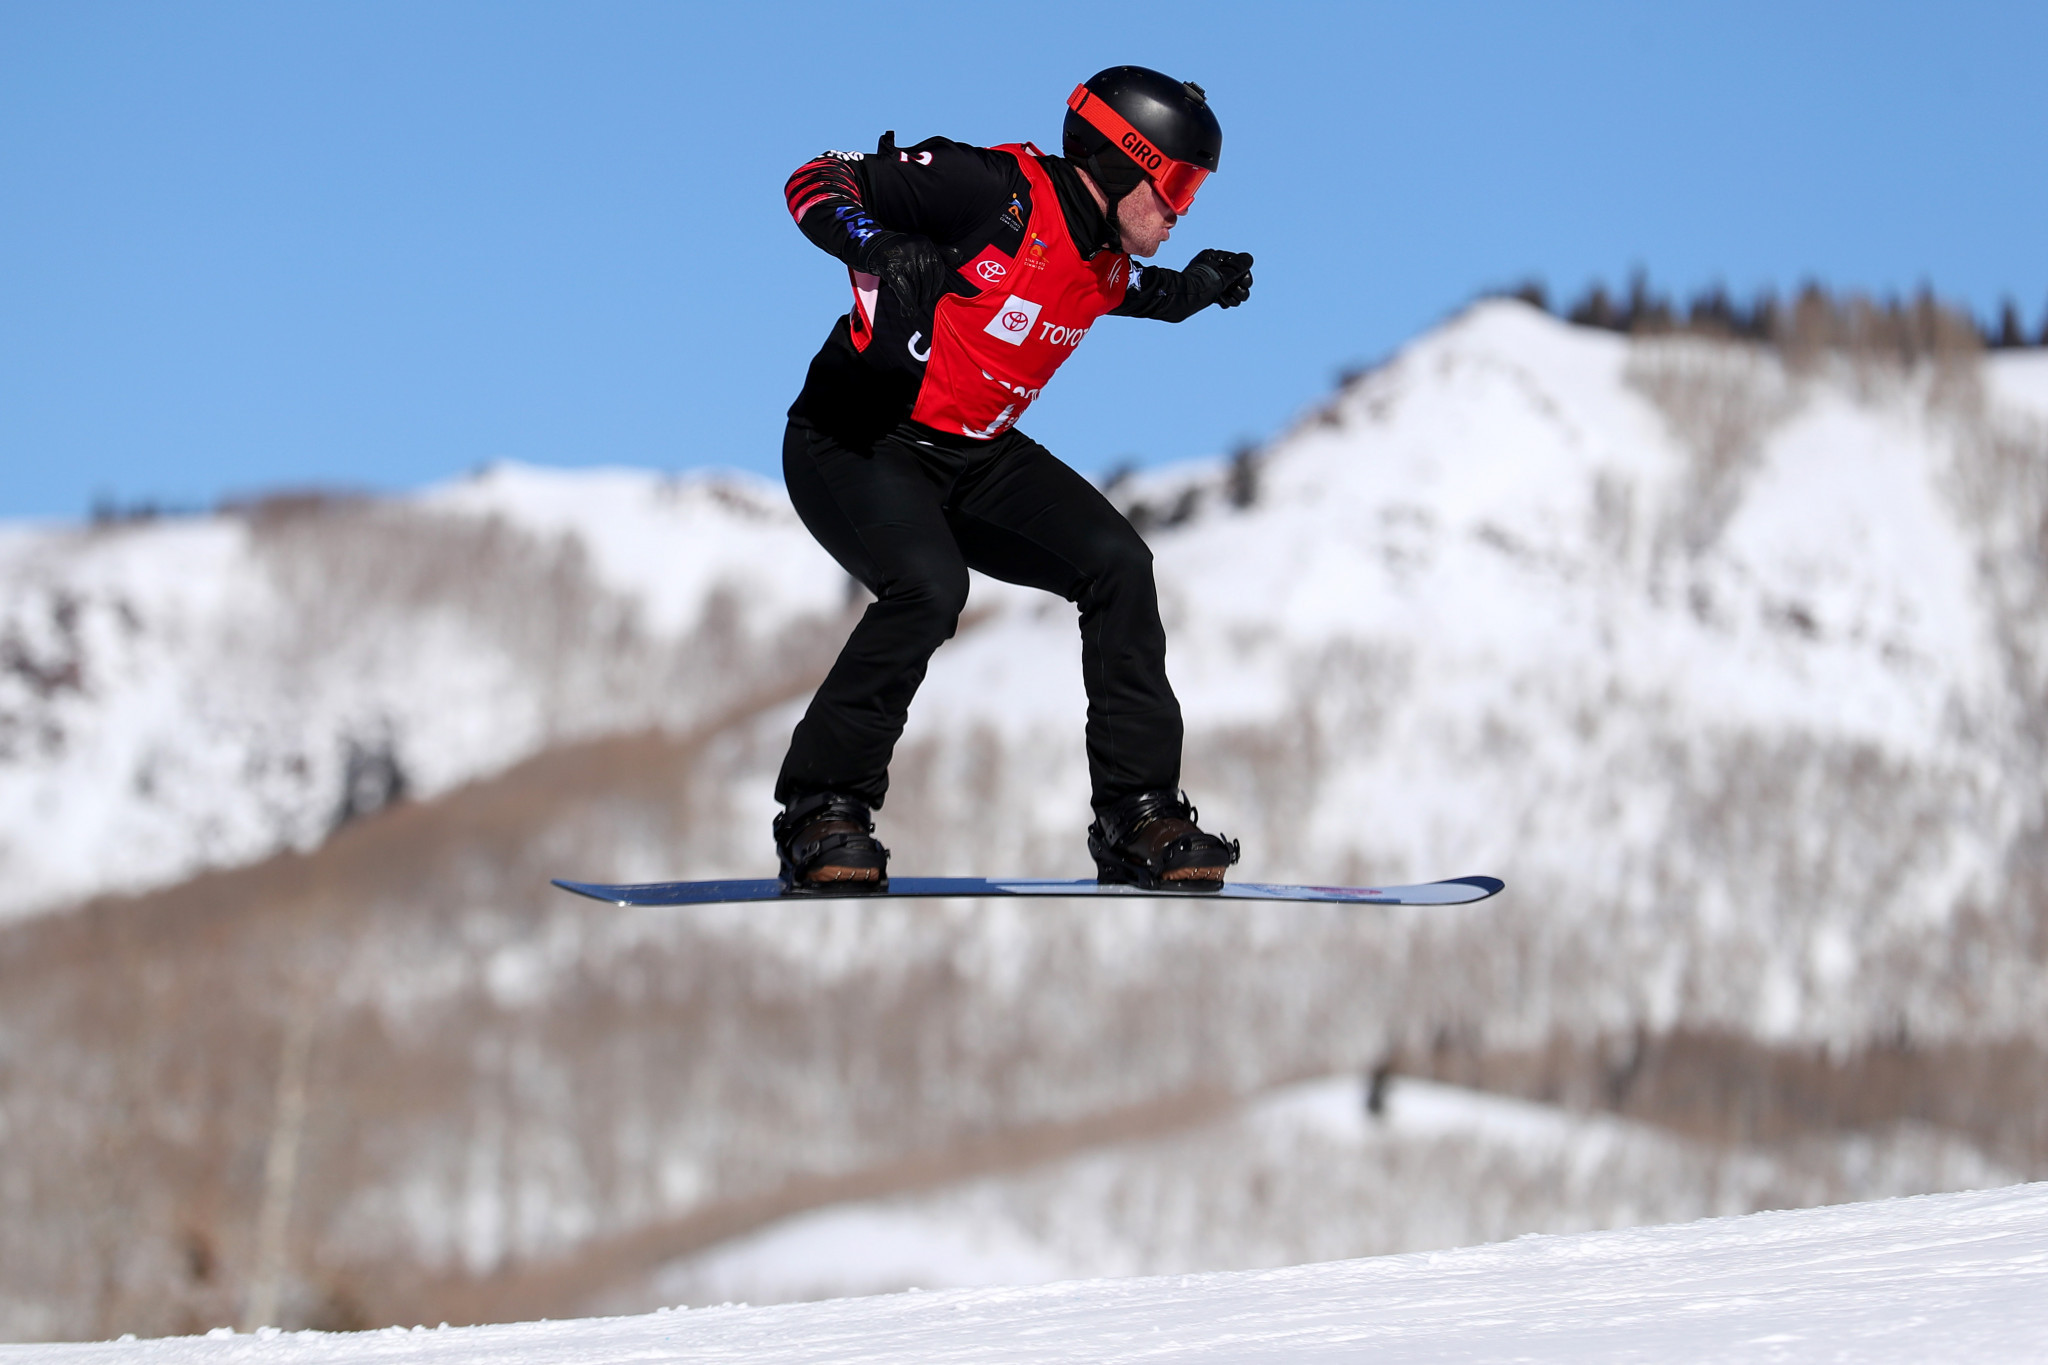 Snowboarder Mick Dierdorff claimed both the individual and team prizes in the United States Olympic Committee's Best of February awards ©Getty Images